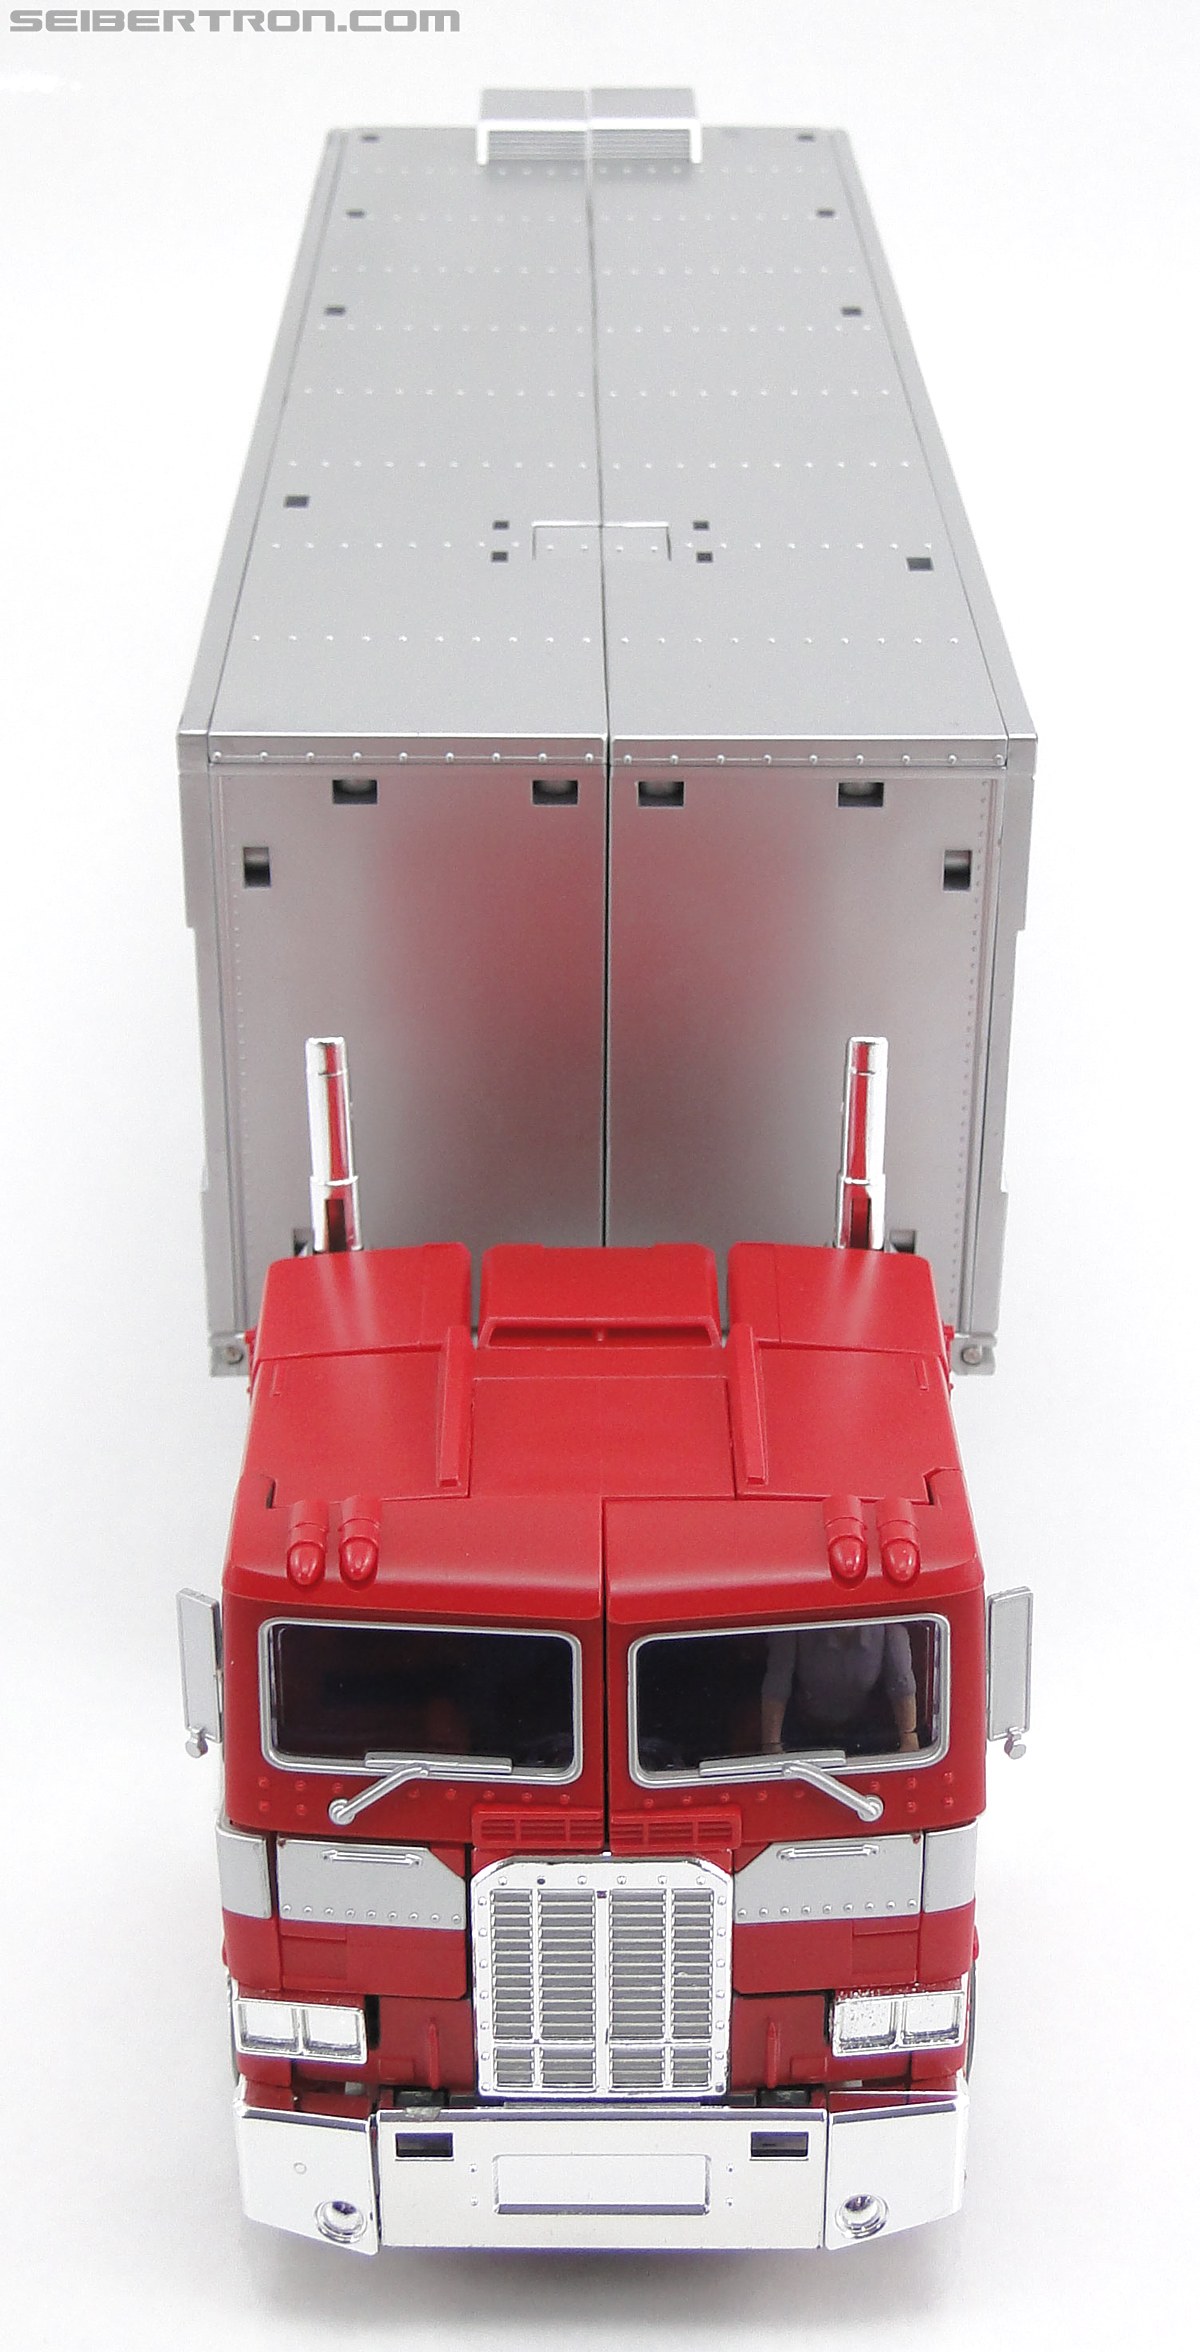 Transformers Masterpiece Optimus Prime (MP-10) (Convoy) (Image #37 of 429)